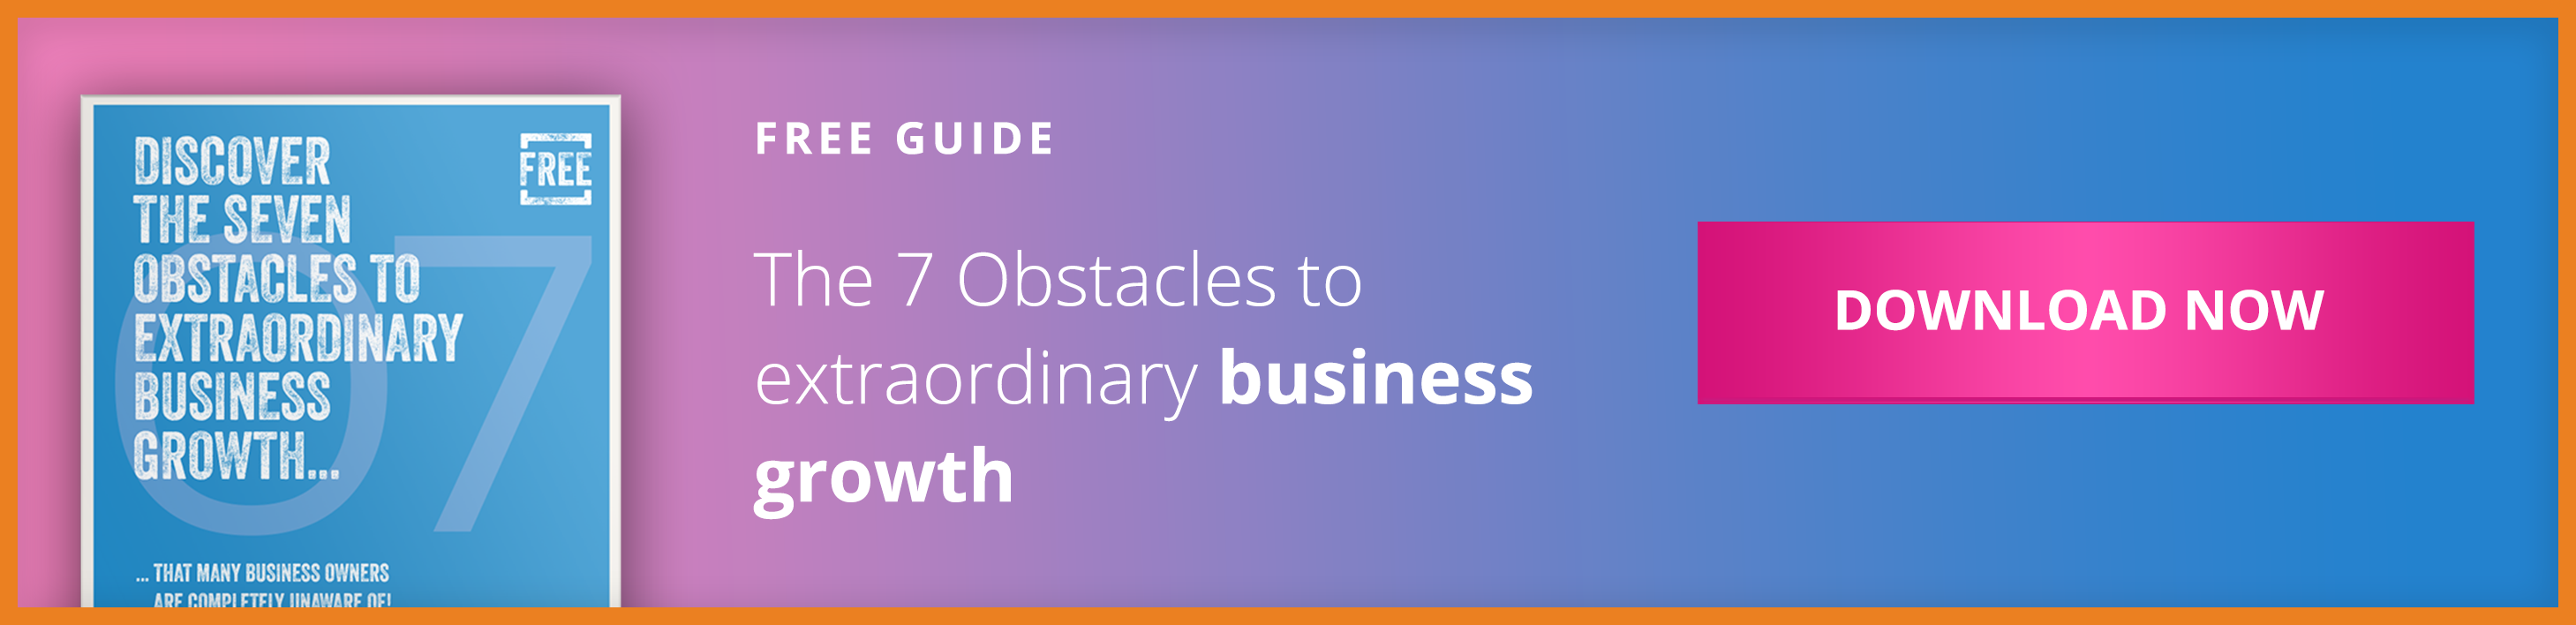 The Seven Obstacles To Extraordinary Business Growth CTA